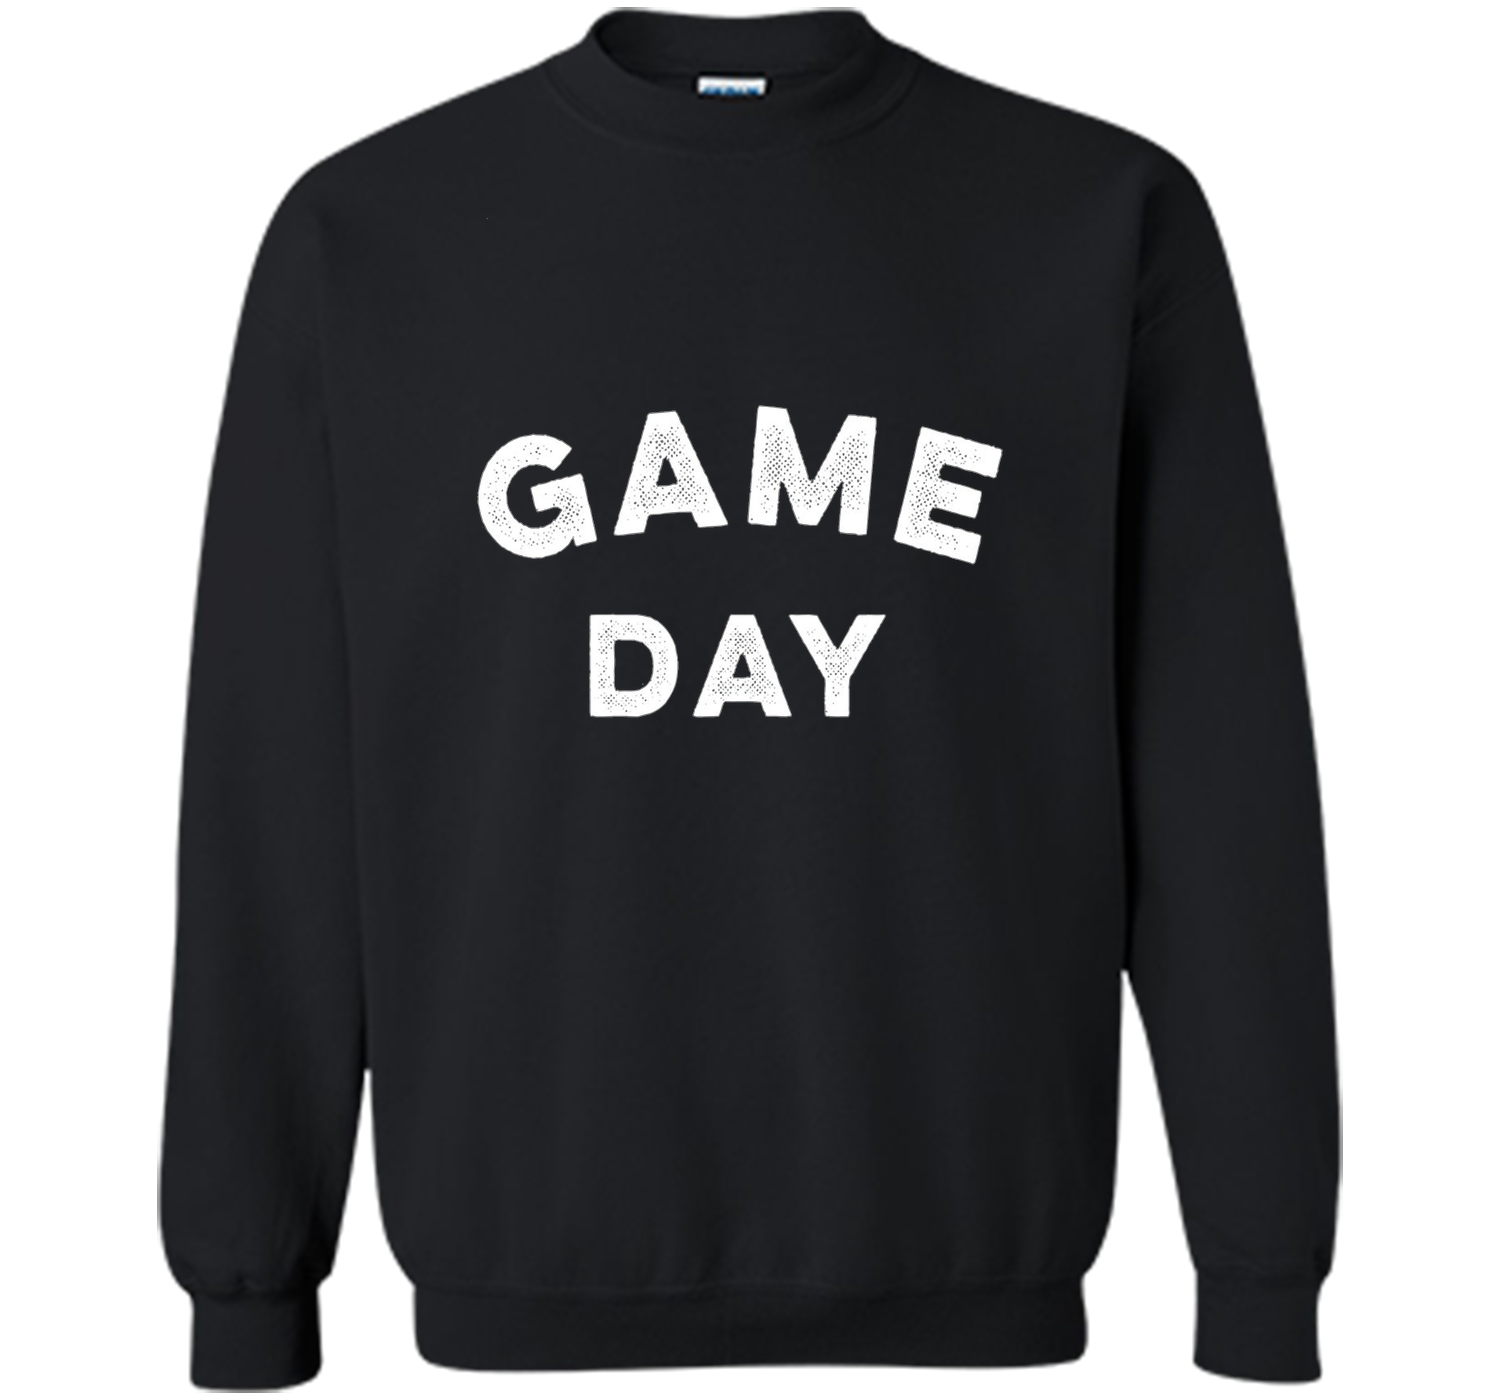 Game Day The perfect T-shirt for sports fans cool shirt